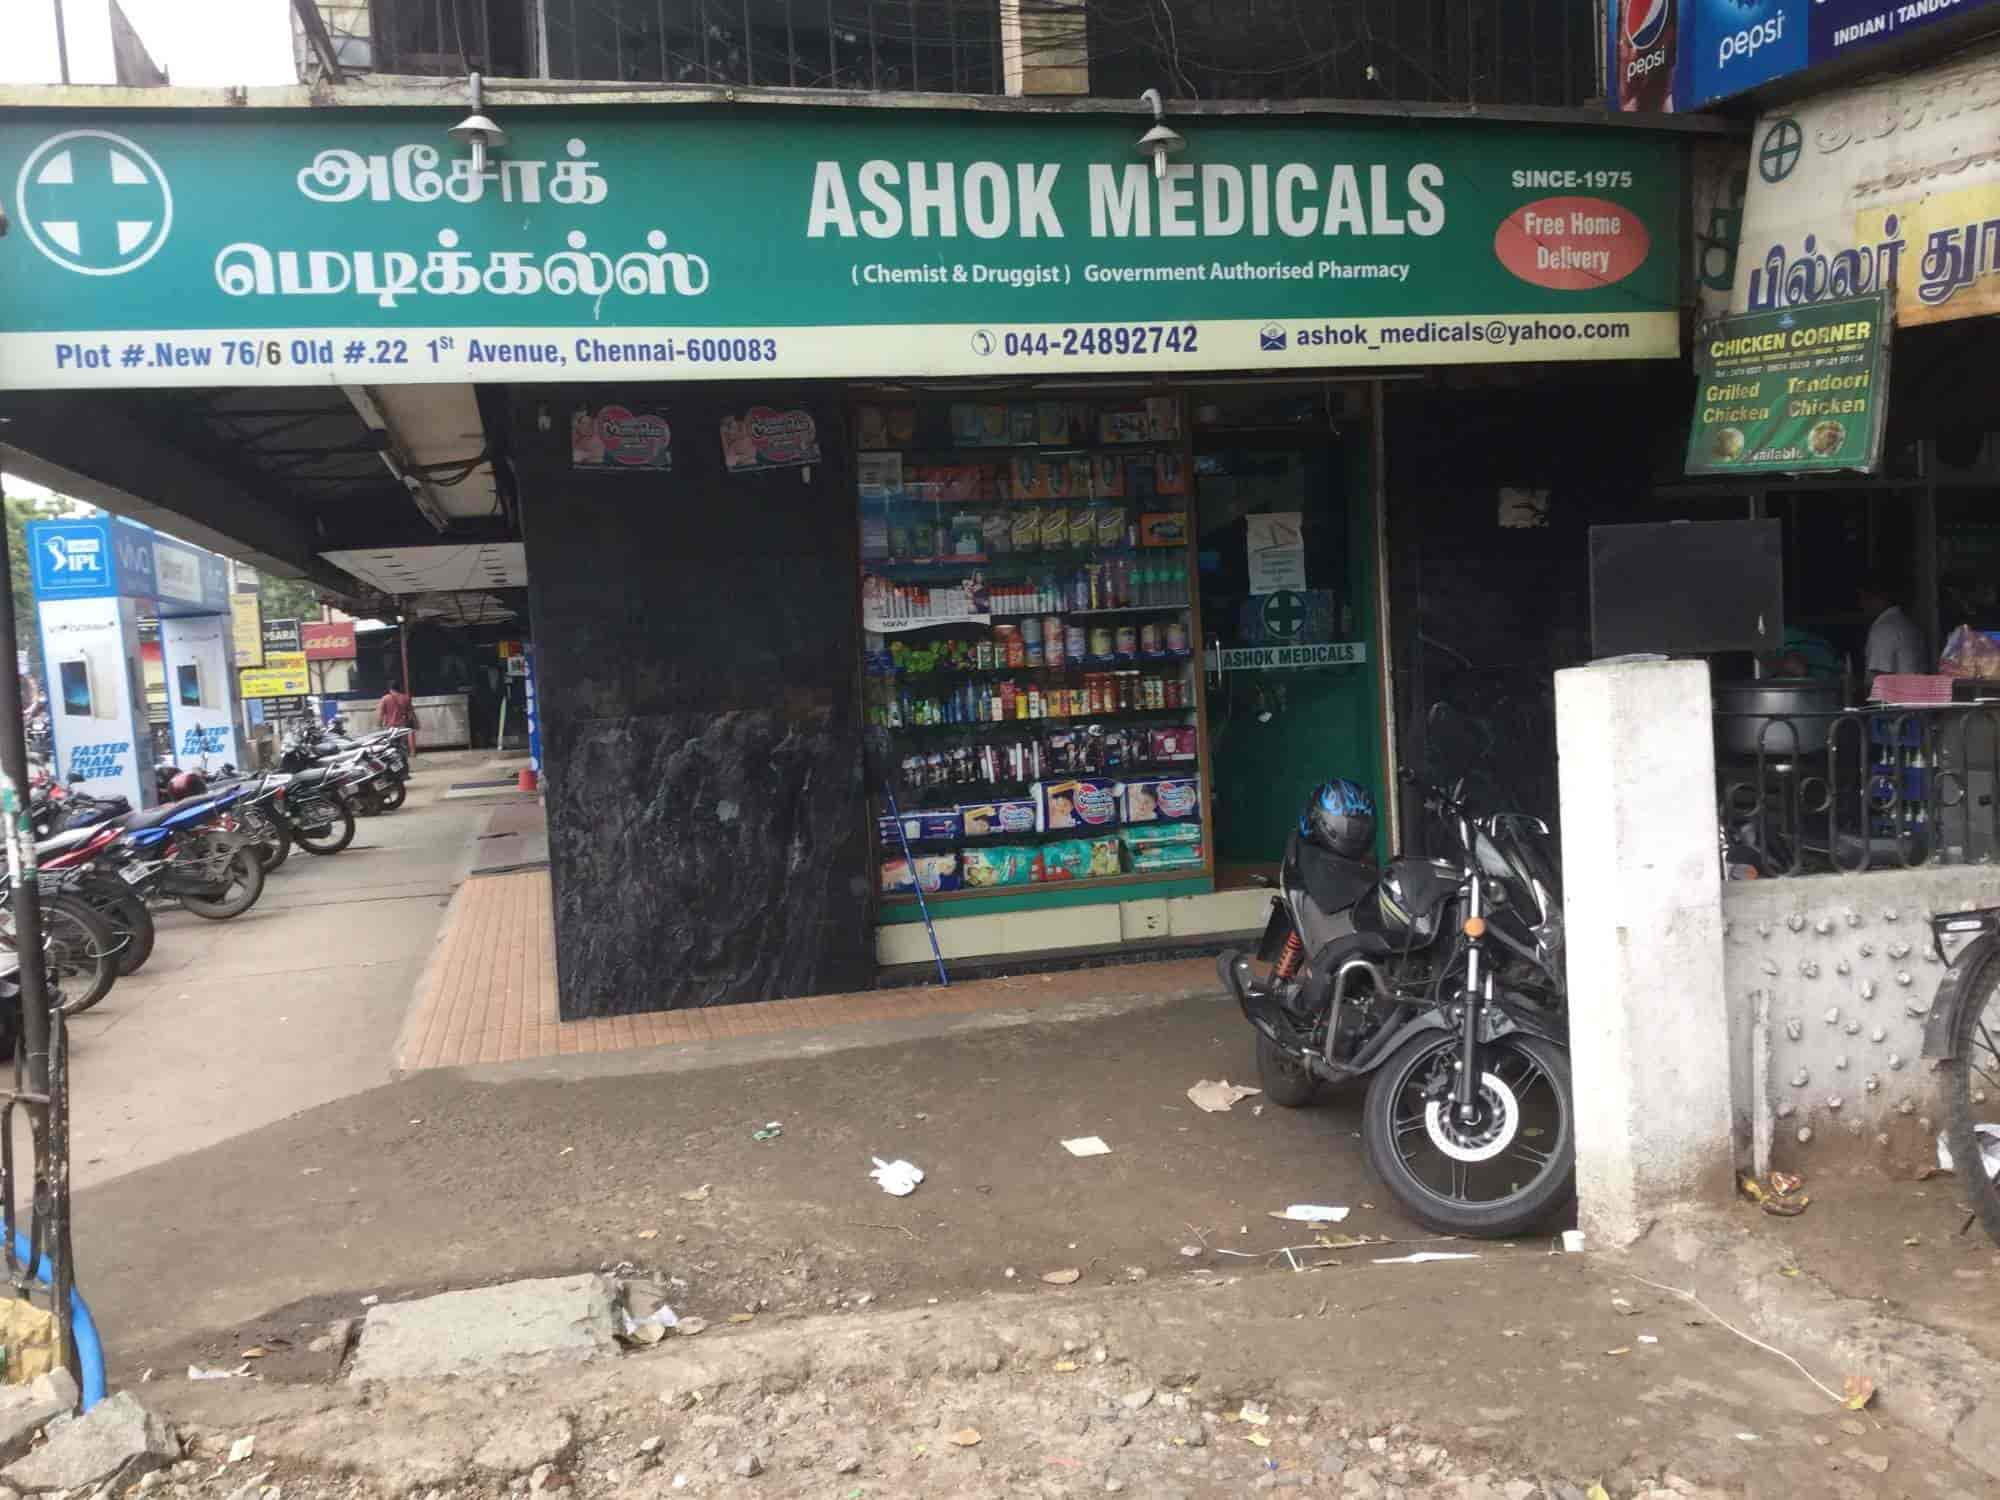 Ashok Medicals Nagar Ashoka Chemists In Chennai Onager Diagram Filebasic Diagrampng Justdial